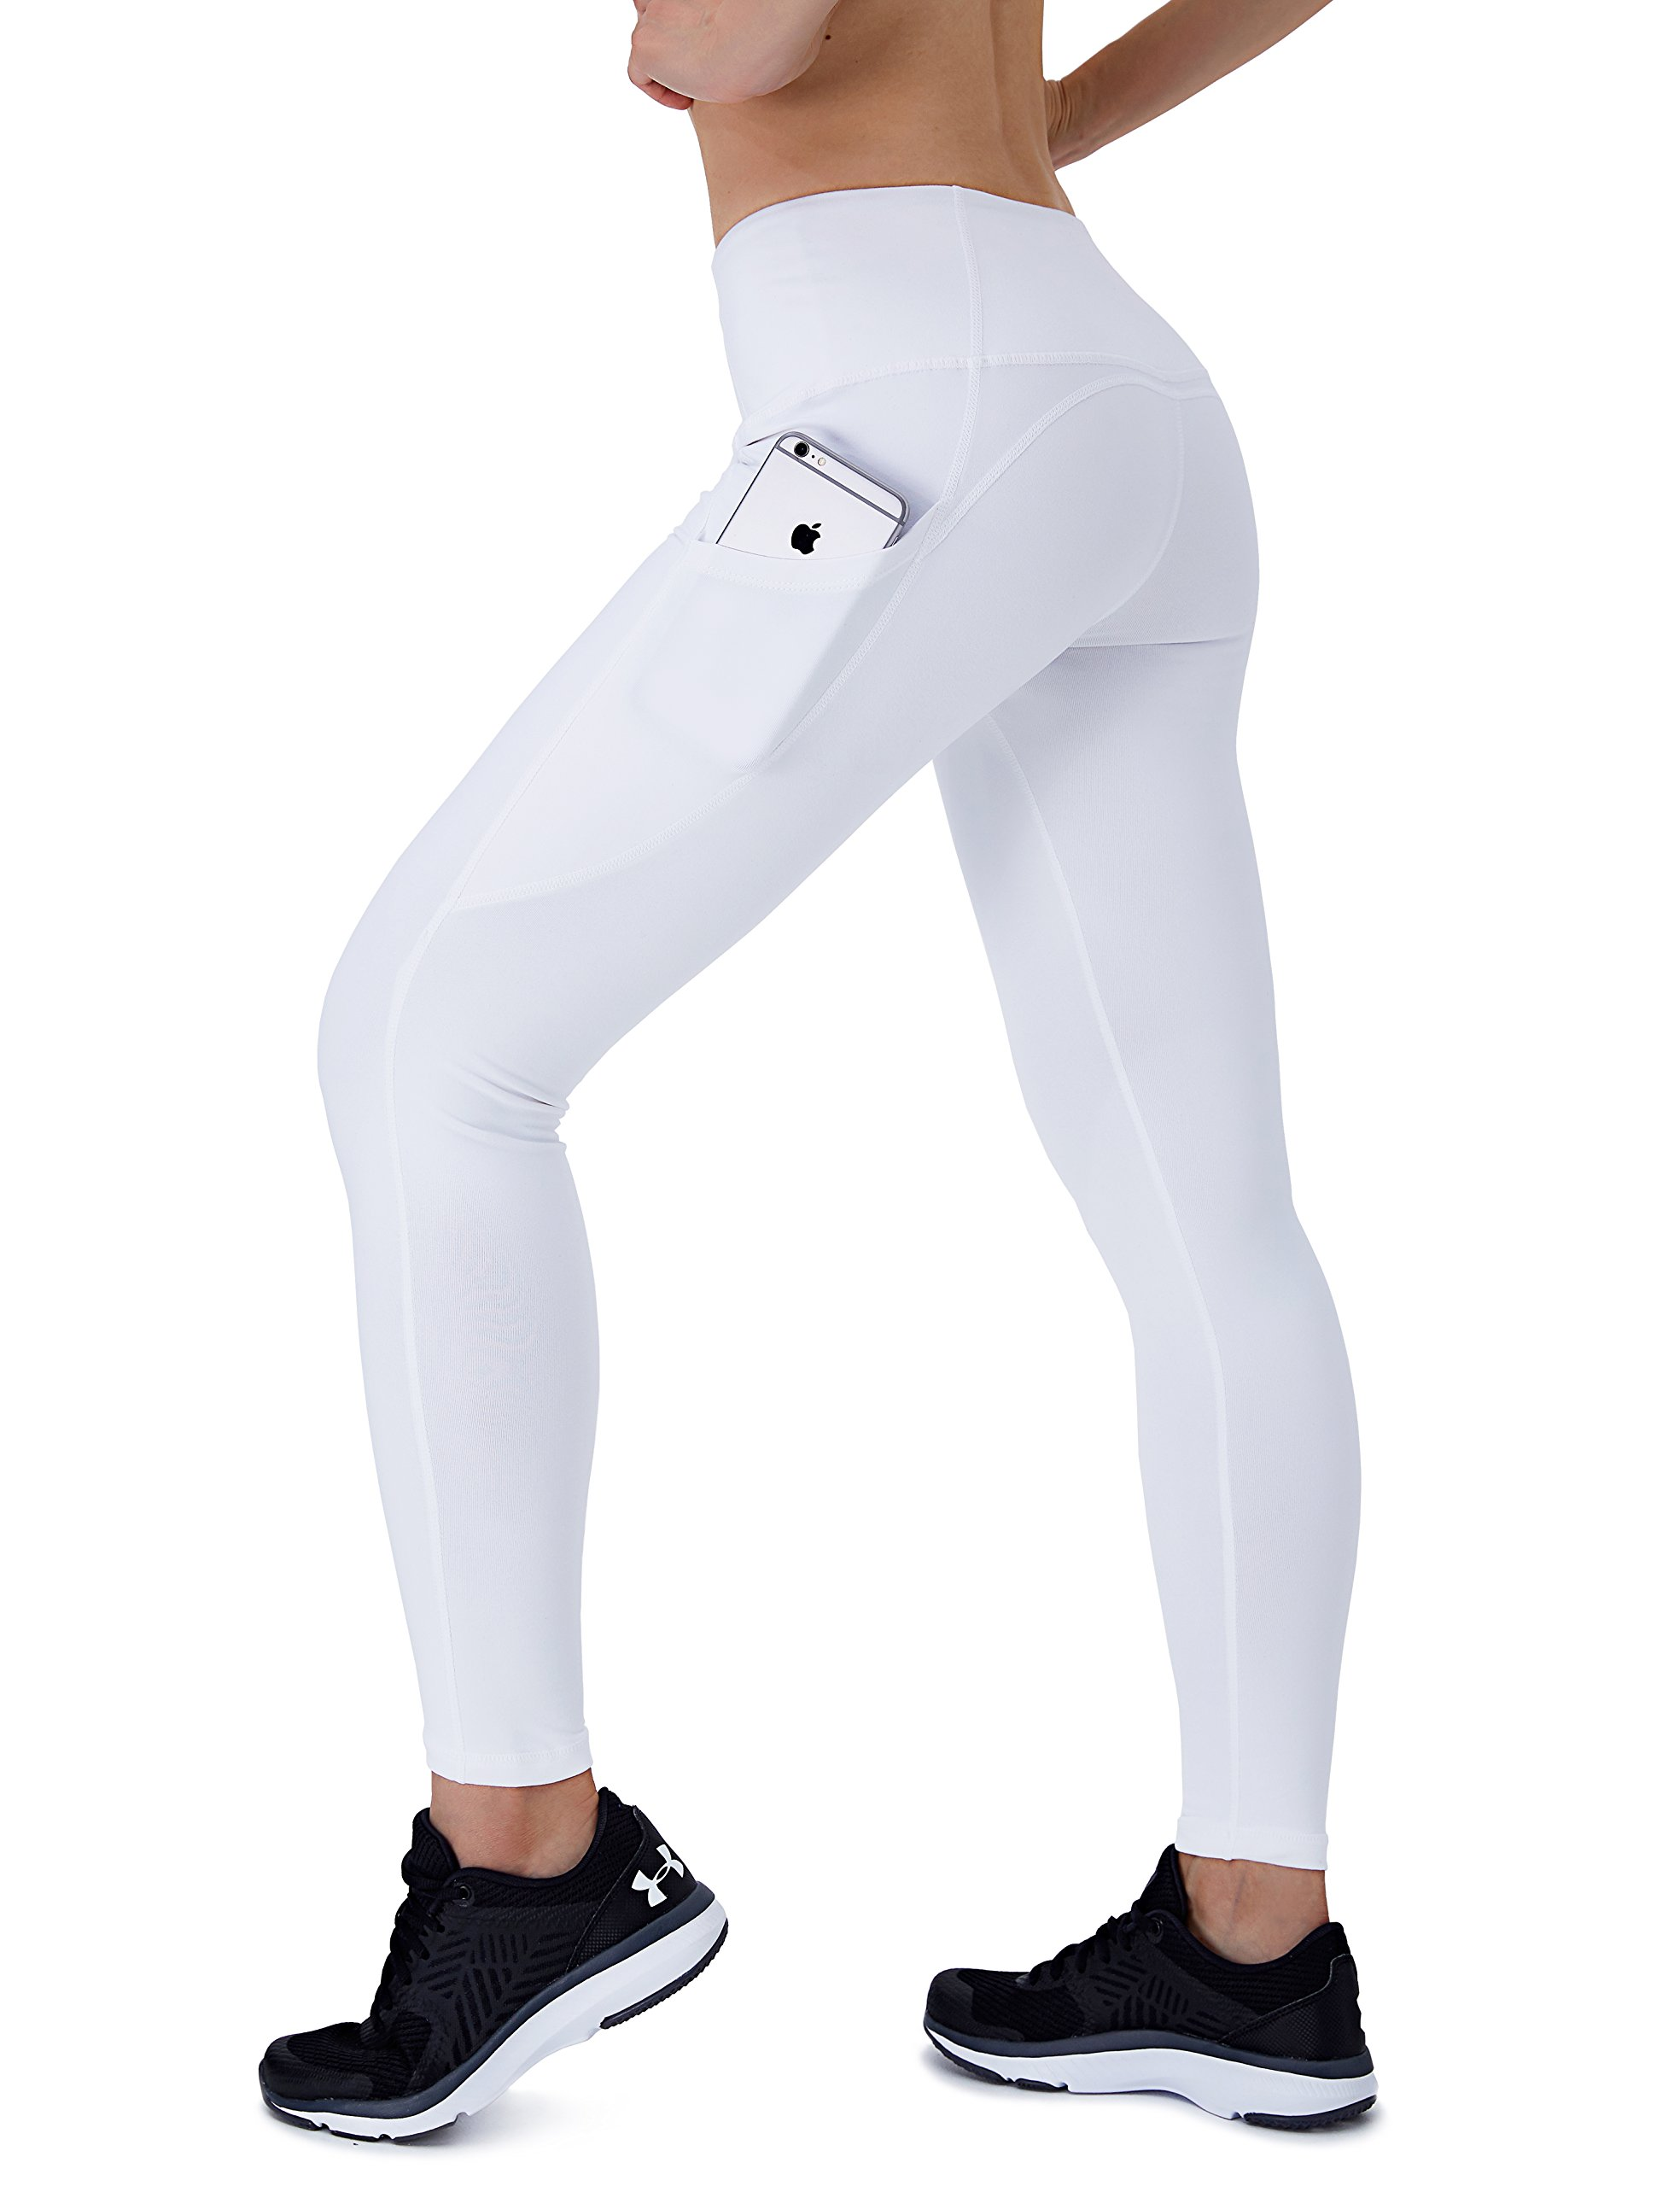 Dyorigin Leggings for Women – High-Waisted Tummy Control Compression Yoga Leggings Athletic Pants with Pockets (White XS)